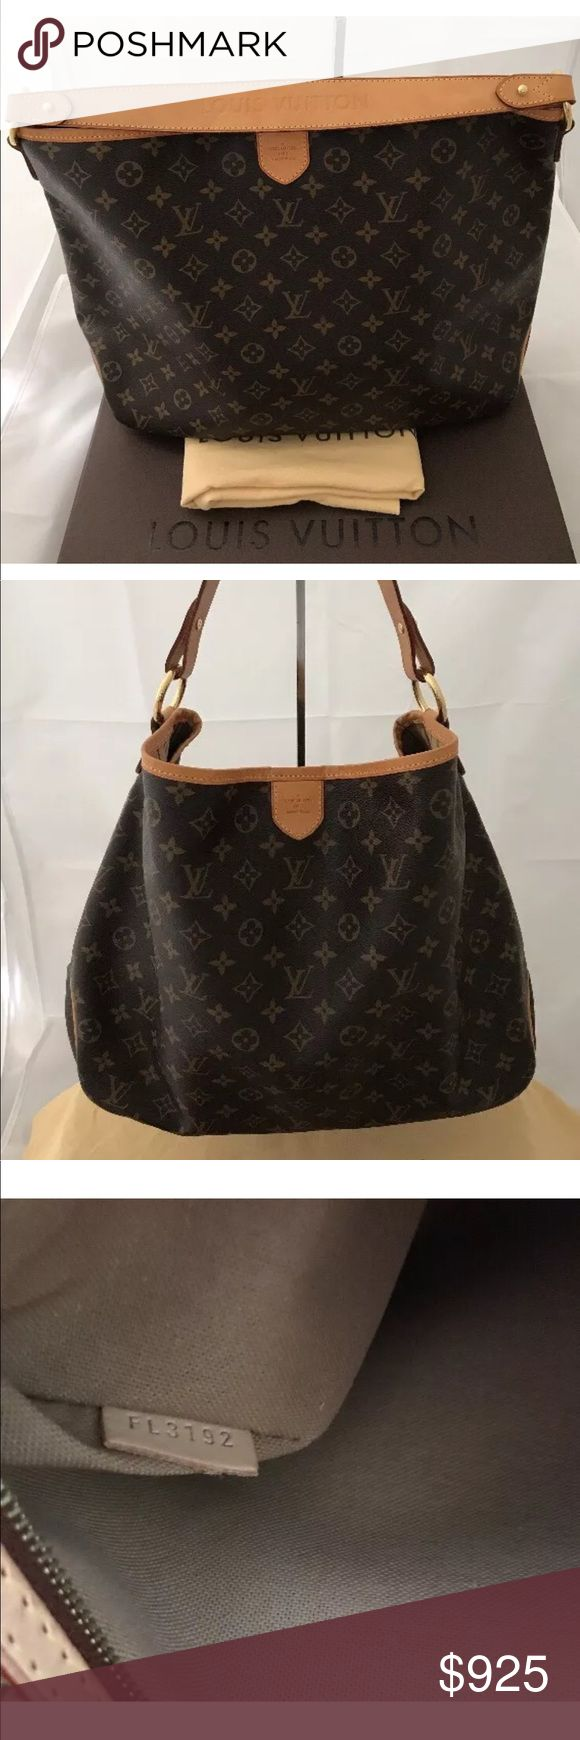 Selling this LOUIS VUITTON DELIGHTFUL MM 💯 percent AUTHENTIC. on Poshmark! My username is: lvluv2018. #shopmycloset #poshmark #fashion #shopping #style #forsale #Louis Vuitton #Handbags